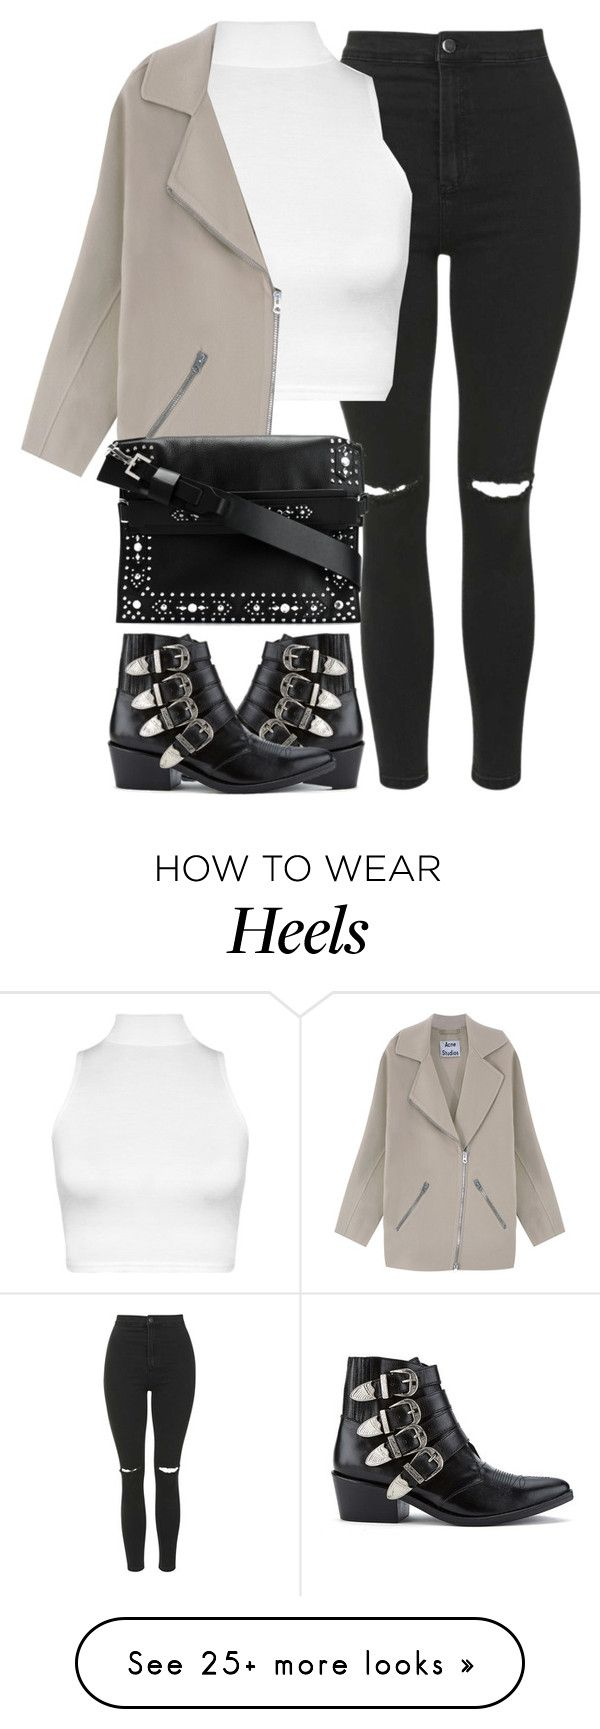 """""""Untitled #3840"""" by london-wanderlust on Polyvore featuring Topshop, WearAll, Acne Studios, Givenchy and Toga"""